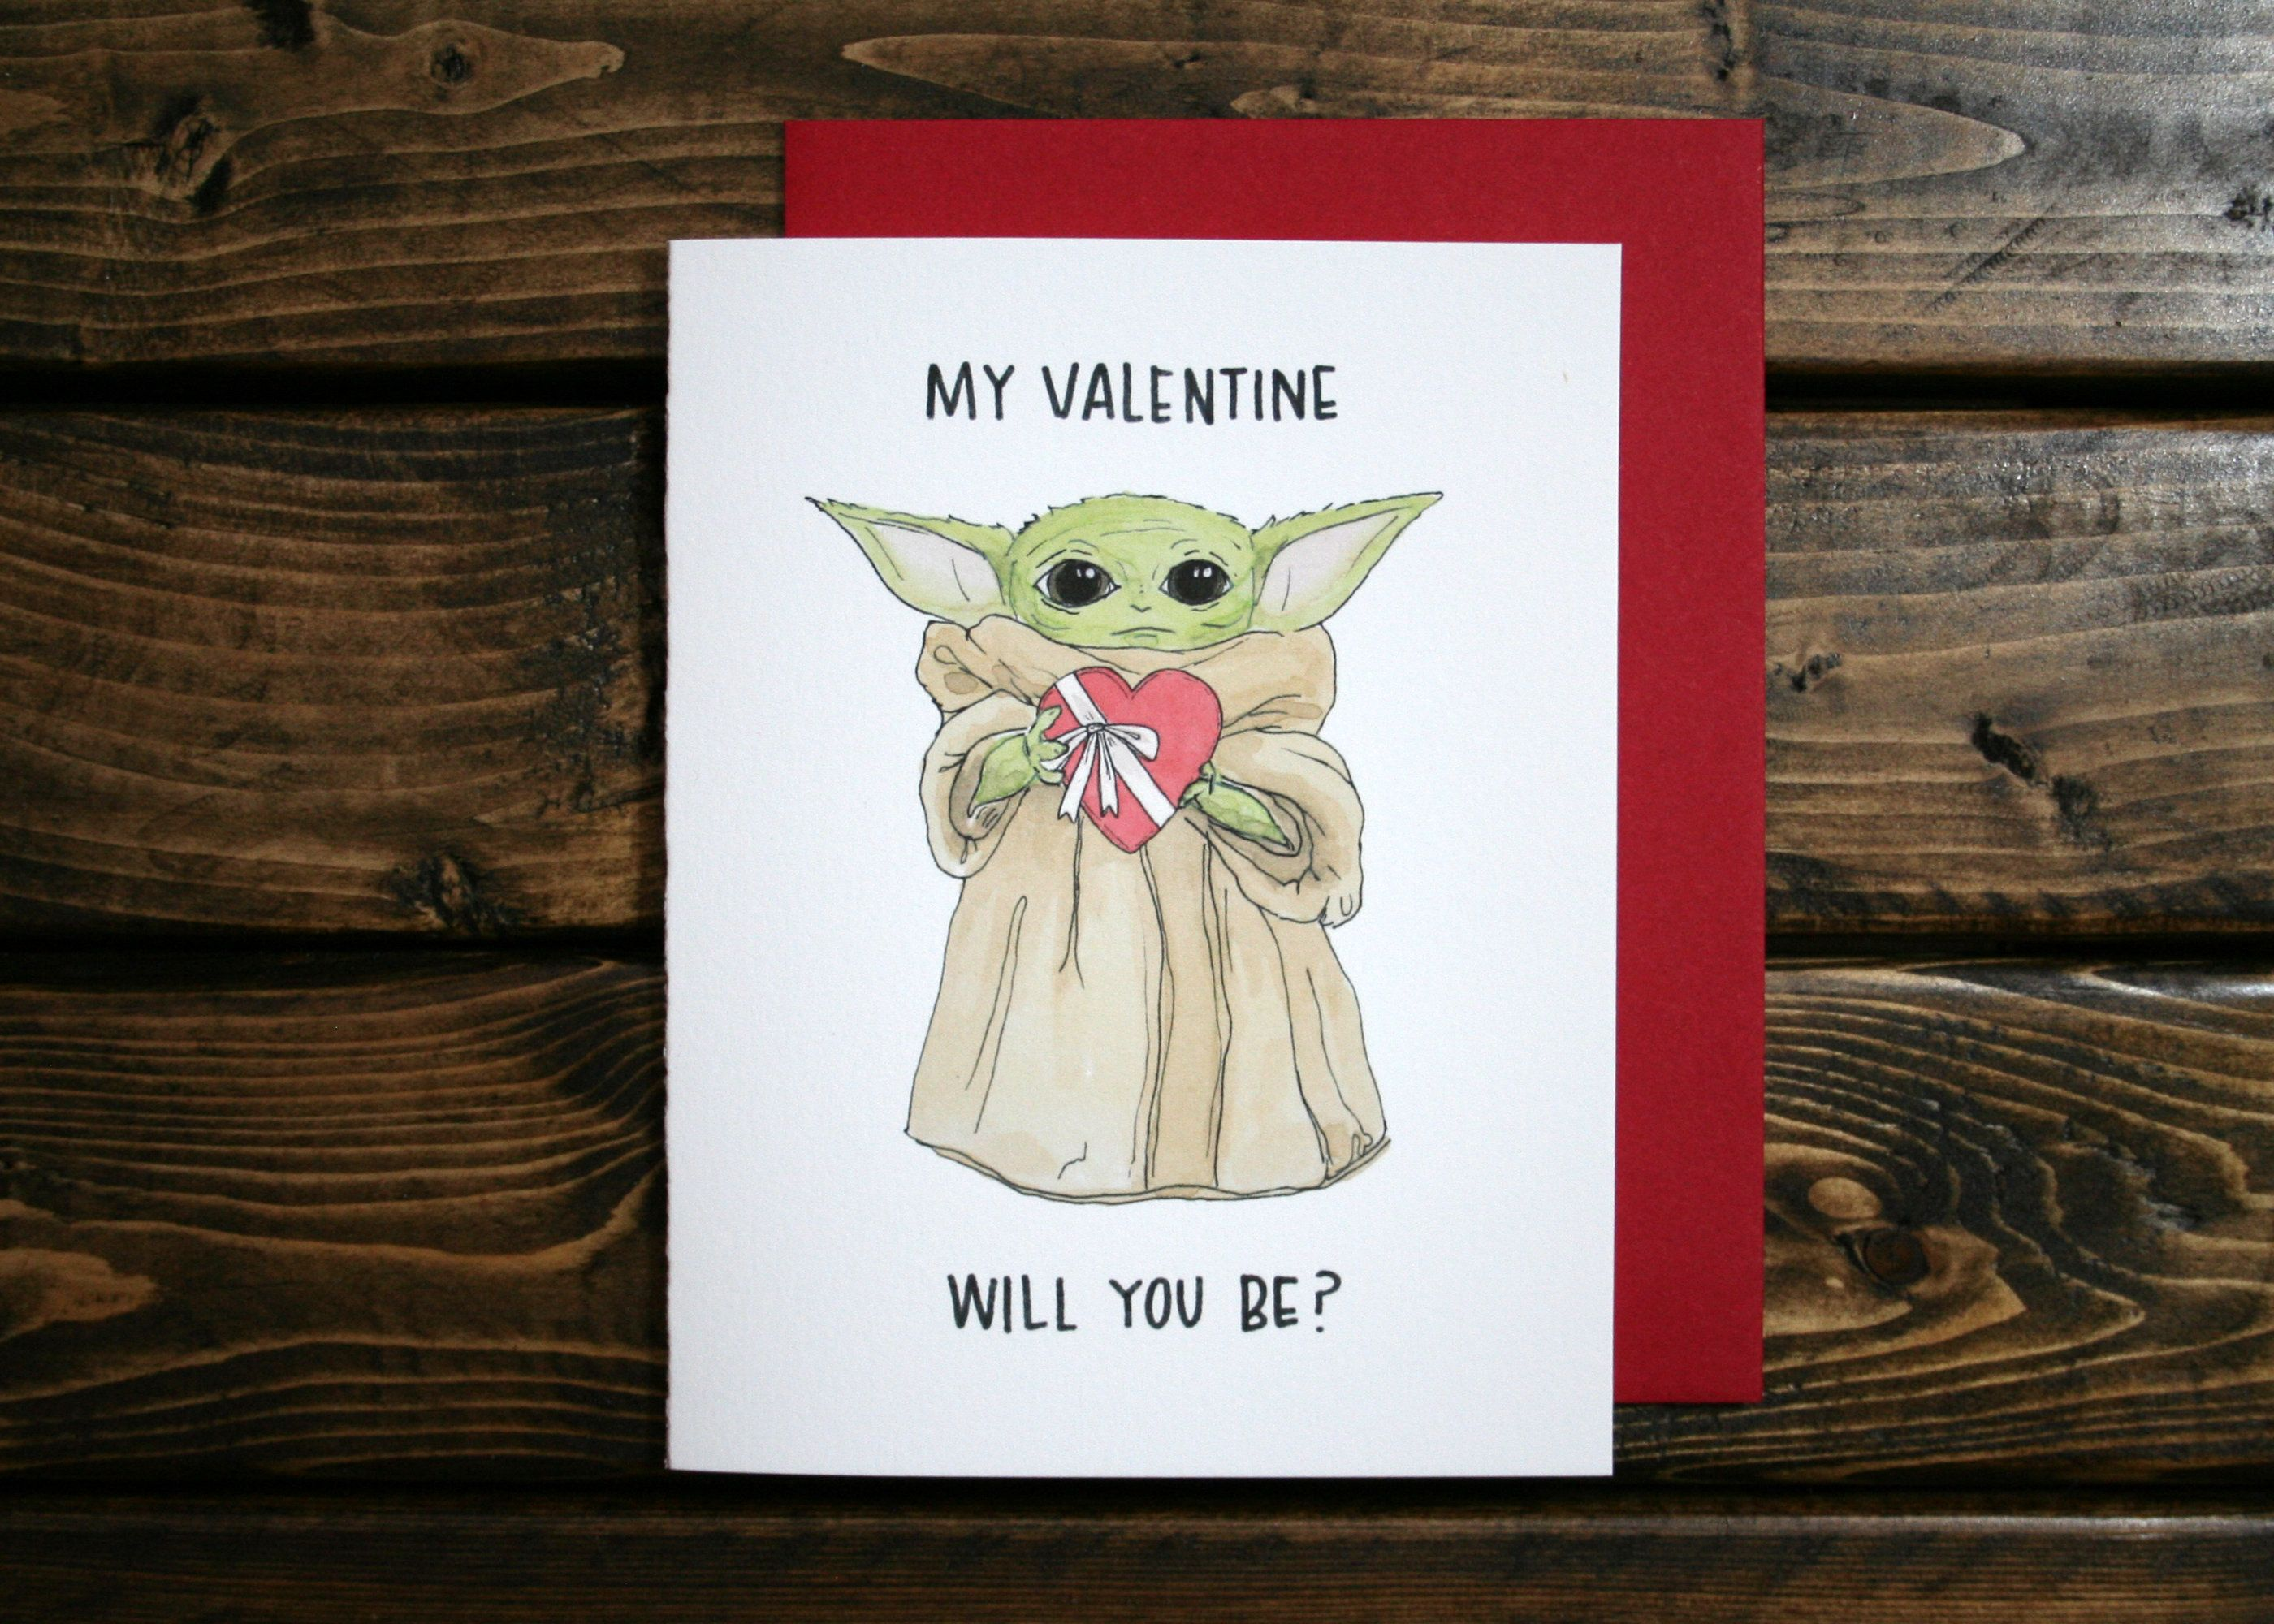 Baby Yoda Valentine S Day Greeting Card Star Wars The Mandalorian By Dundermiffl Valentine S Day Greeting Cards Valentines Day Greetings Valentine Day Cards